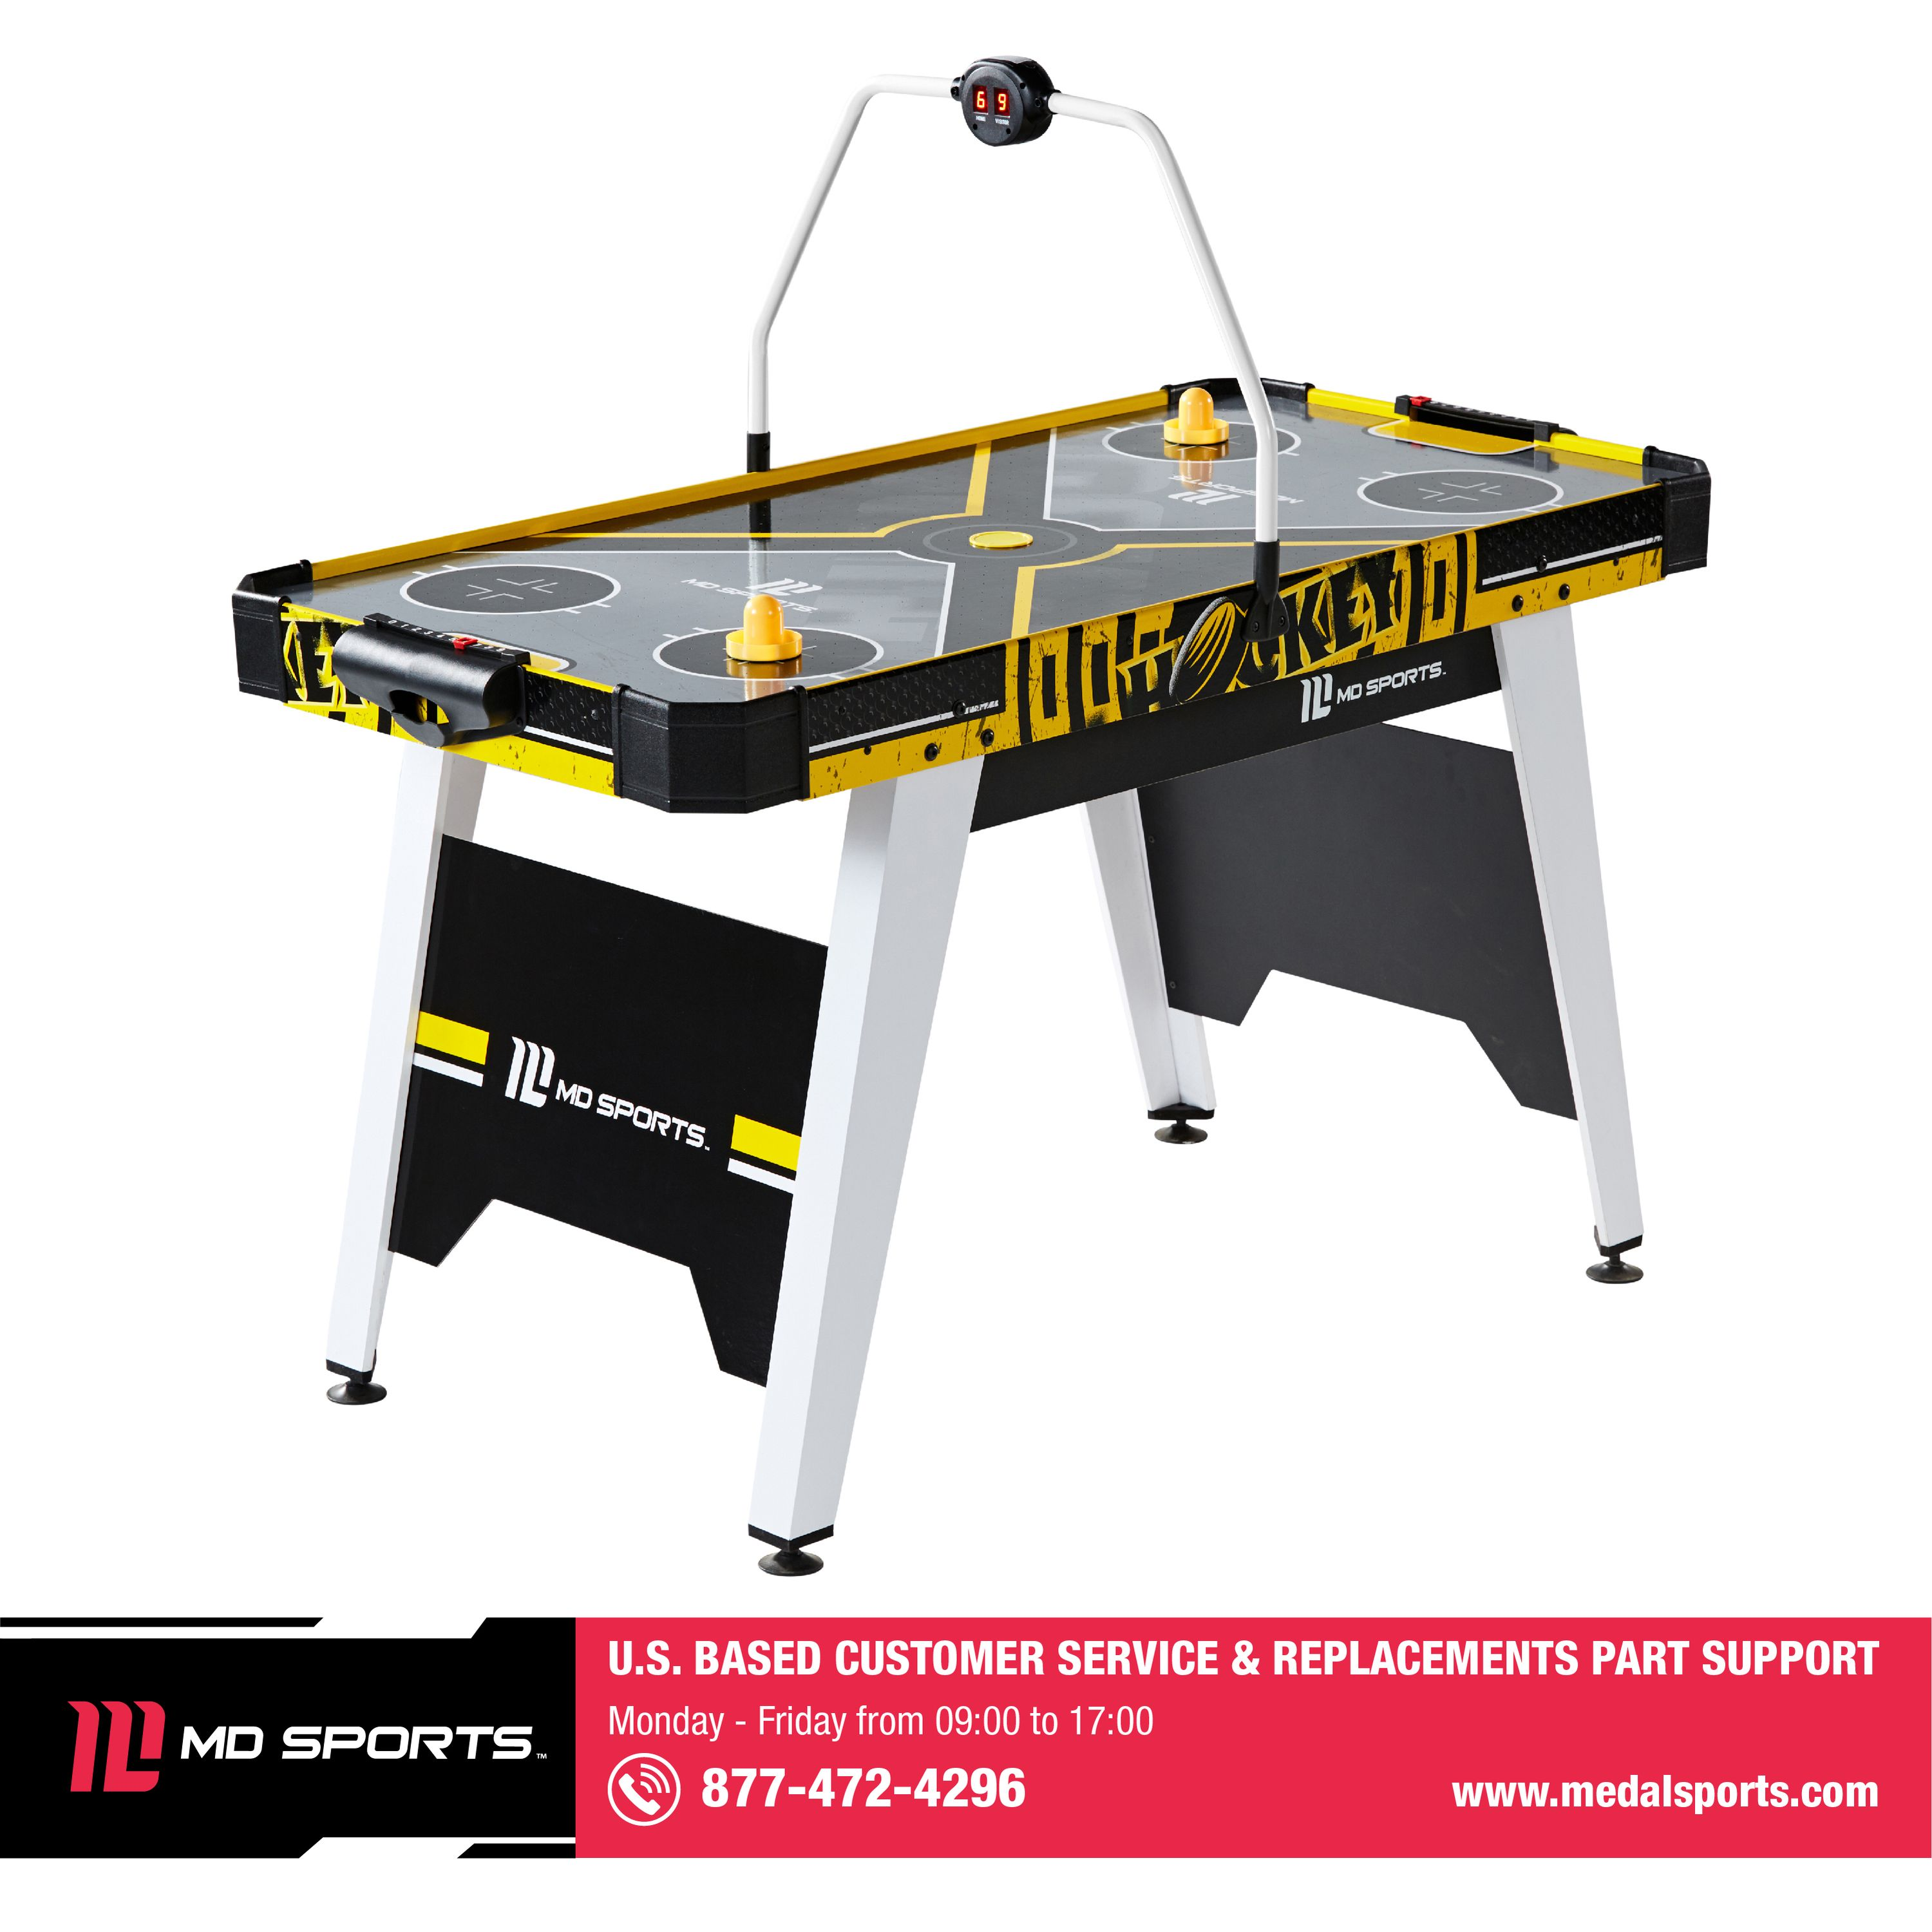 Air Hockey Table for Kids and Adults Completed Air Hockey Table Top Accessories Plug-in Powered Air Hockey Set 2 Pucks+2 Paddles+Led Score Board+Electric Motor Fan+Blowers for Game Room Compact-Size